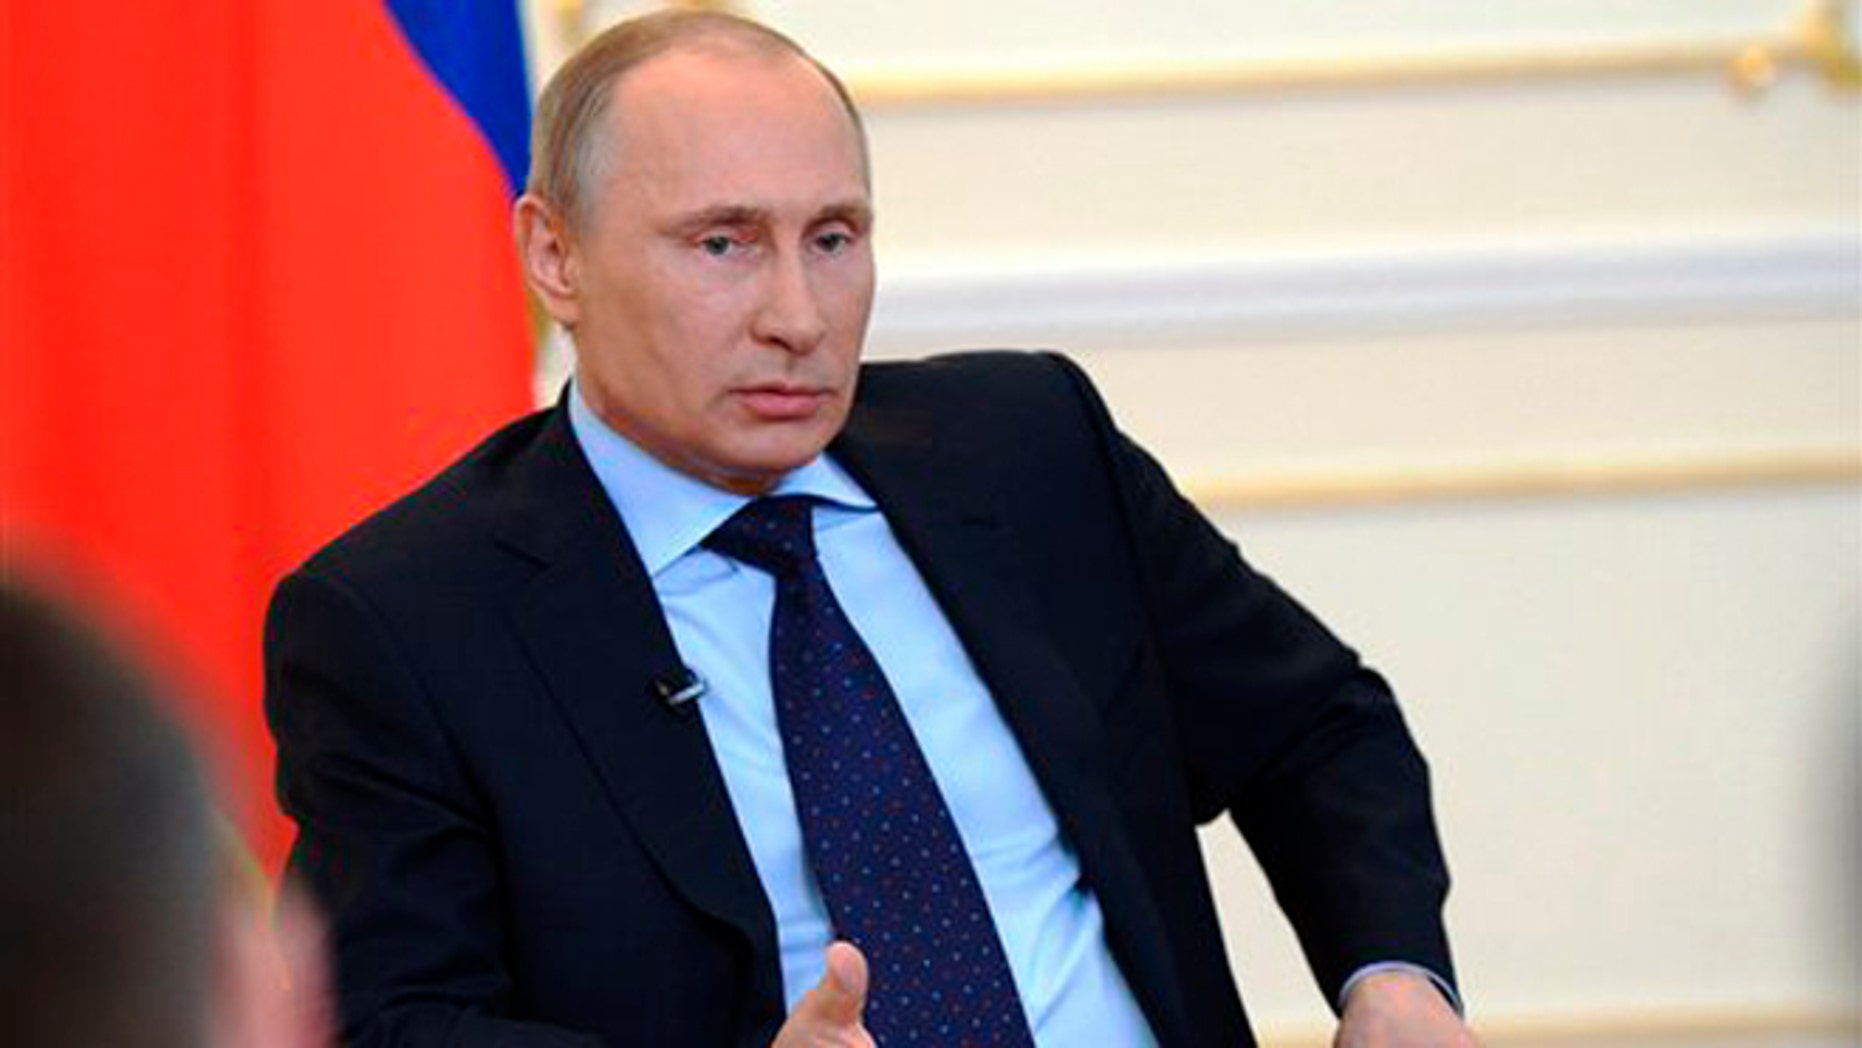 March 4, 2014: President Vladimir Putin answers journalists' questions on current situation in Ukraine at the Novo-Ogaryovo presidential residence outside Moscow.